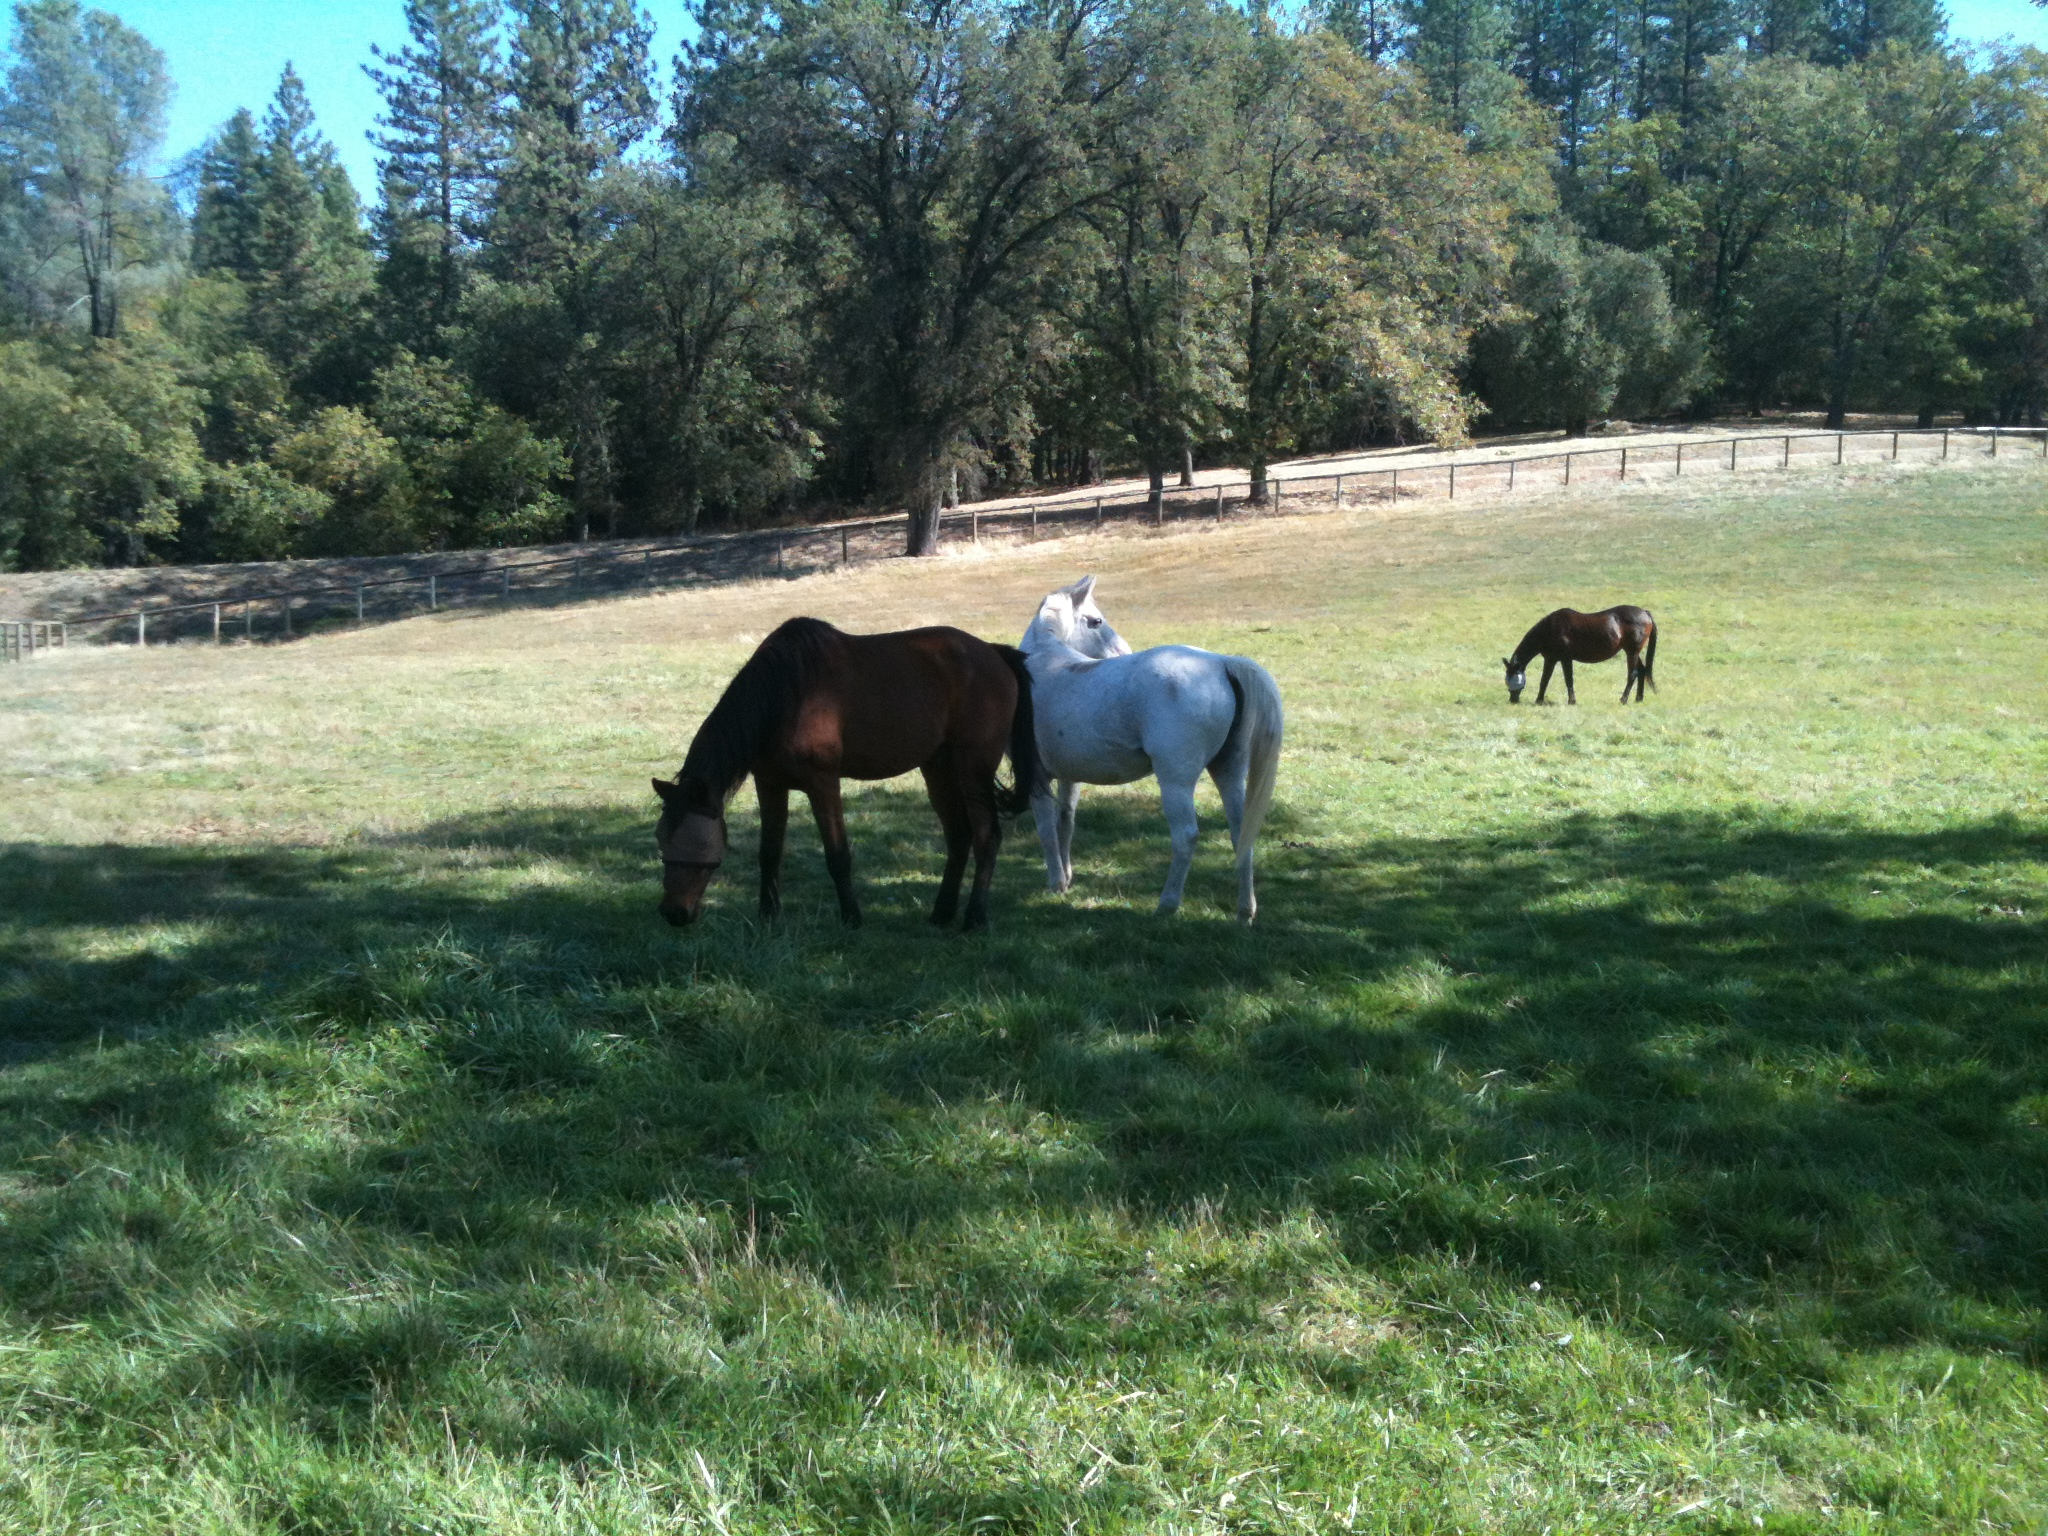 Horse retirement and Lay-up